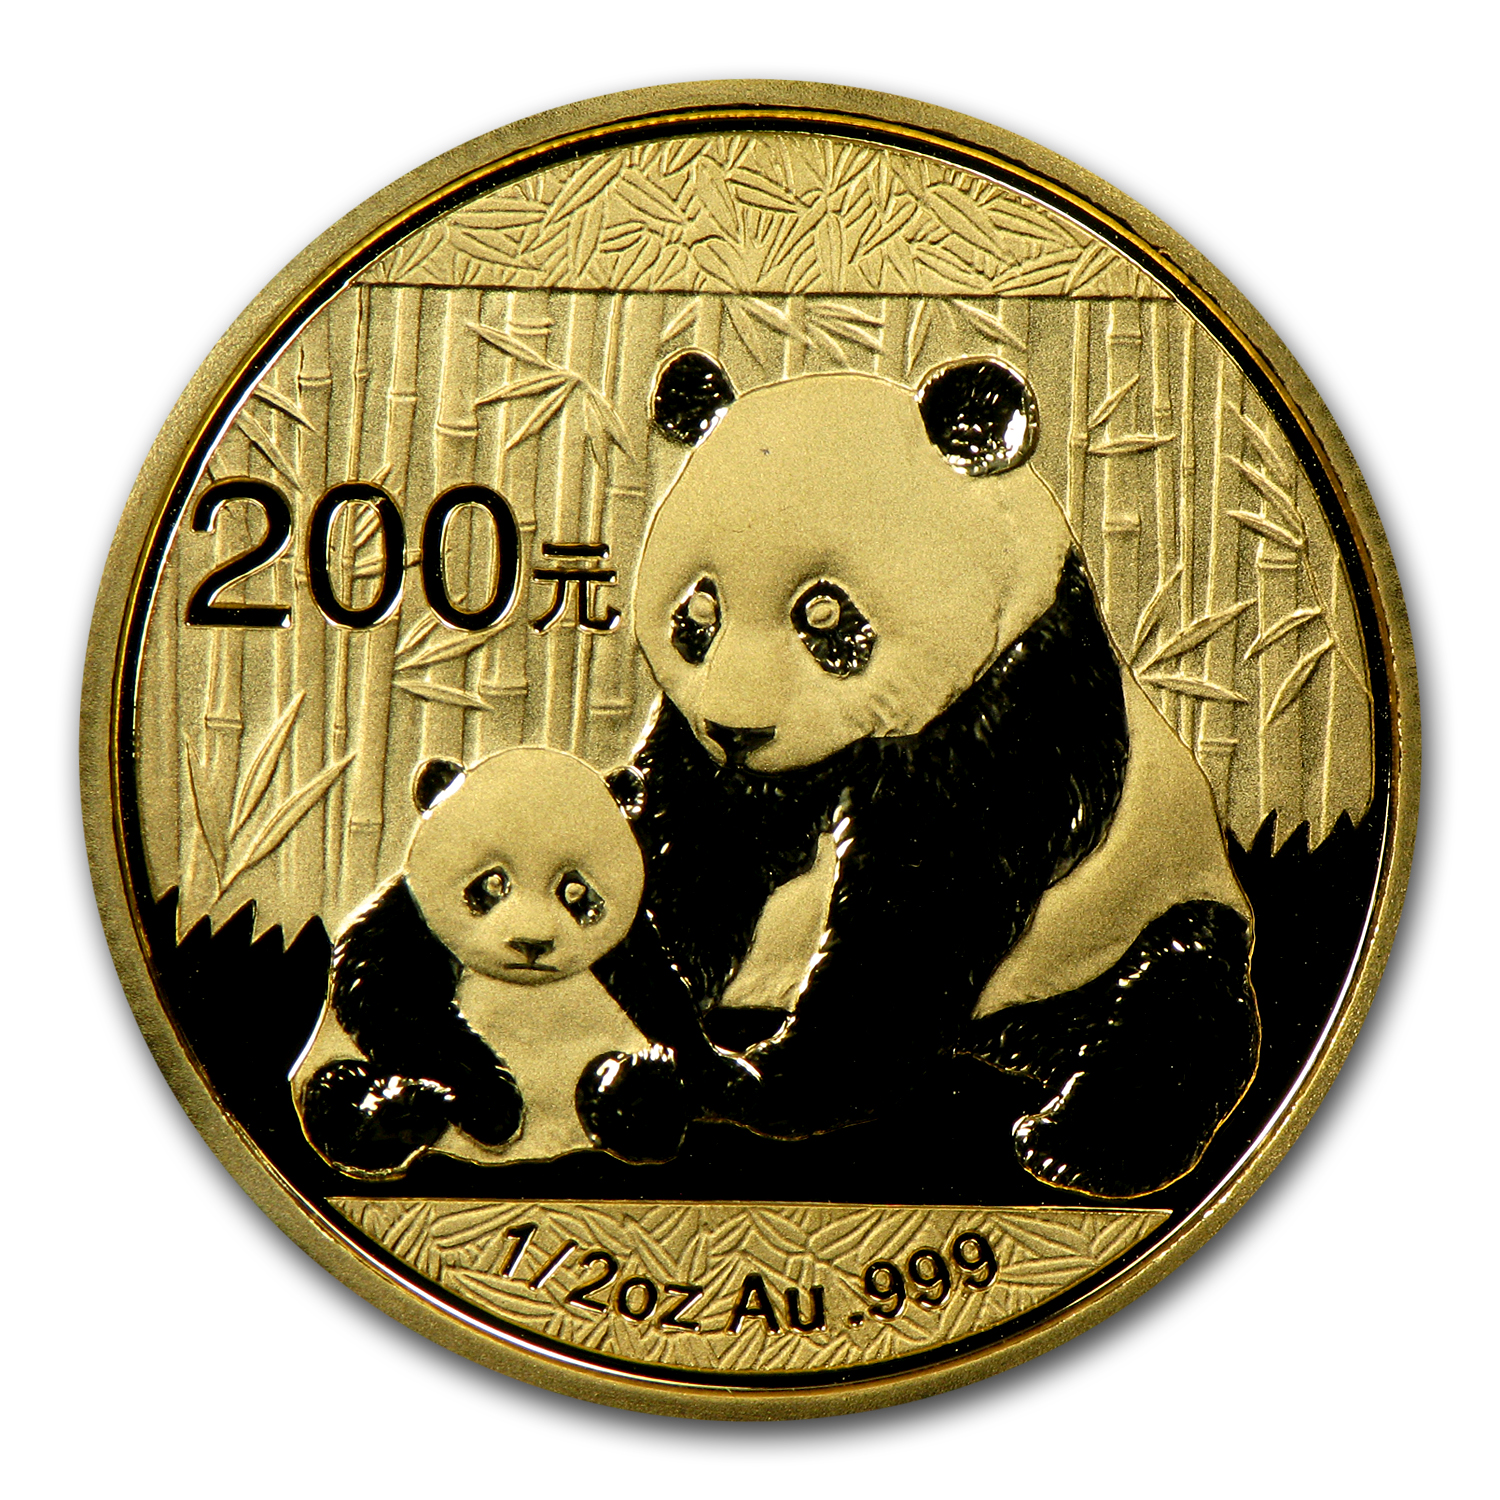 2012 China 1/2 oz Gold Panda BU (Not Sealed)